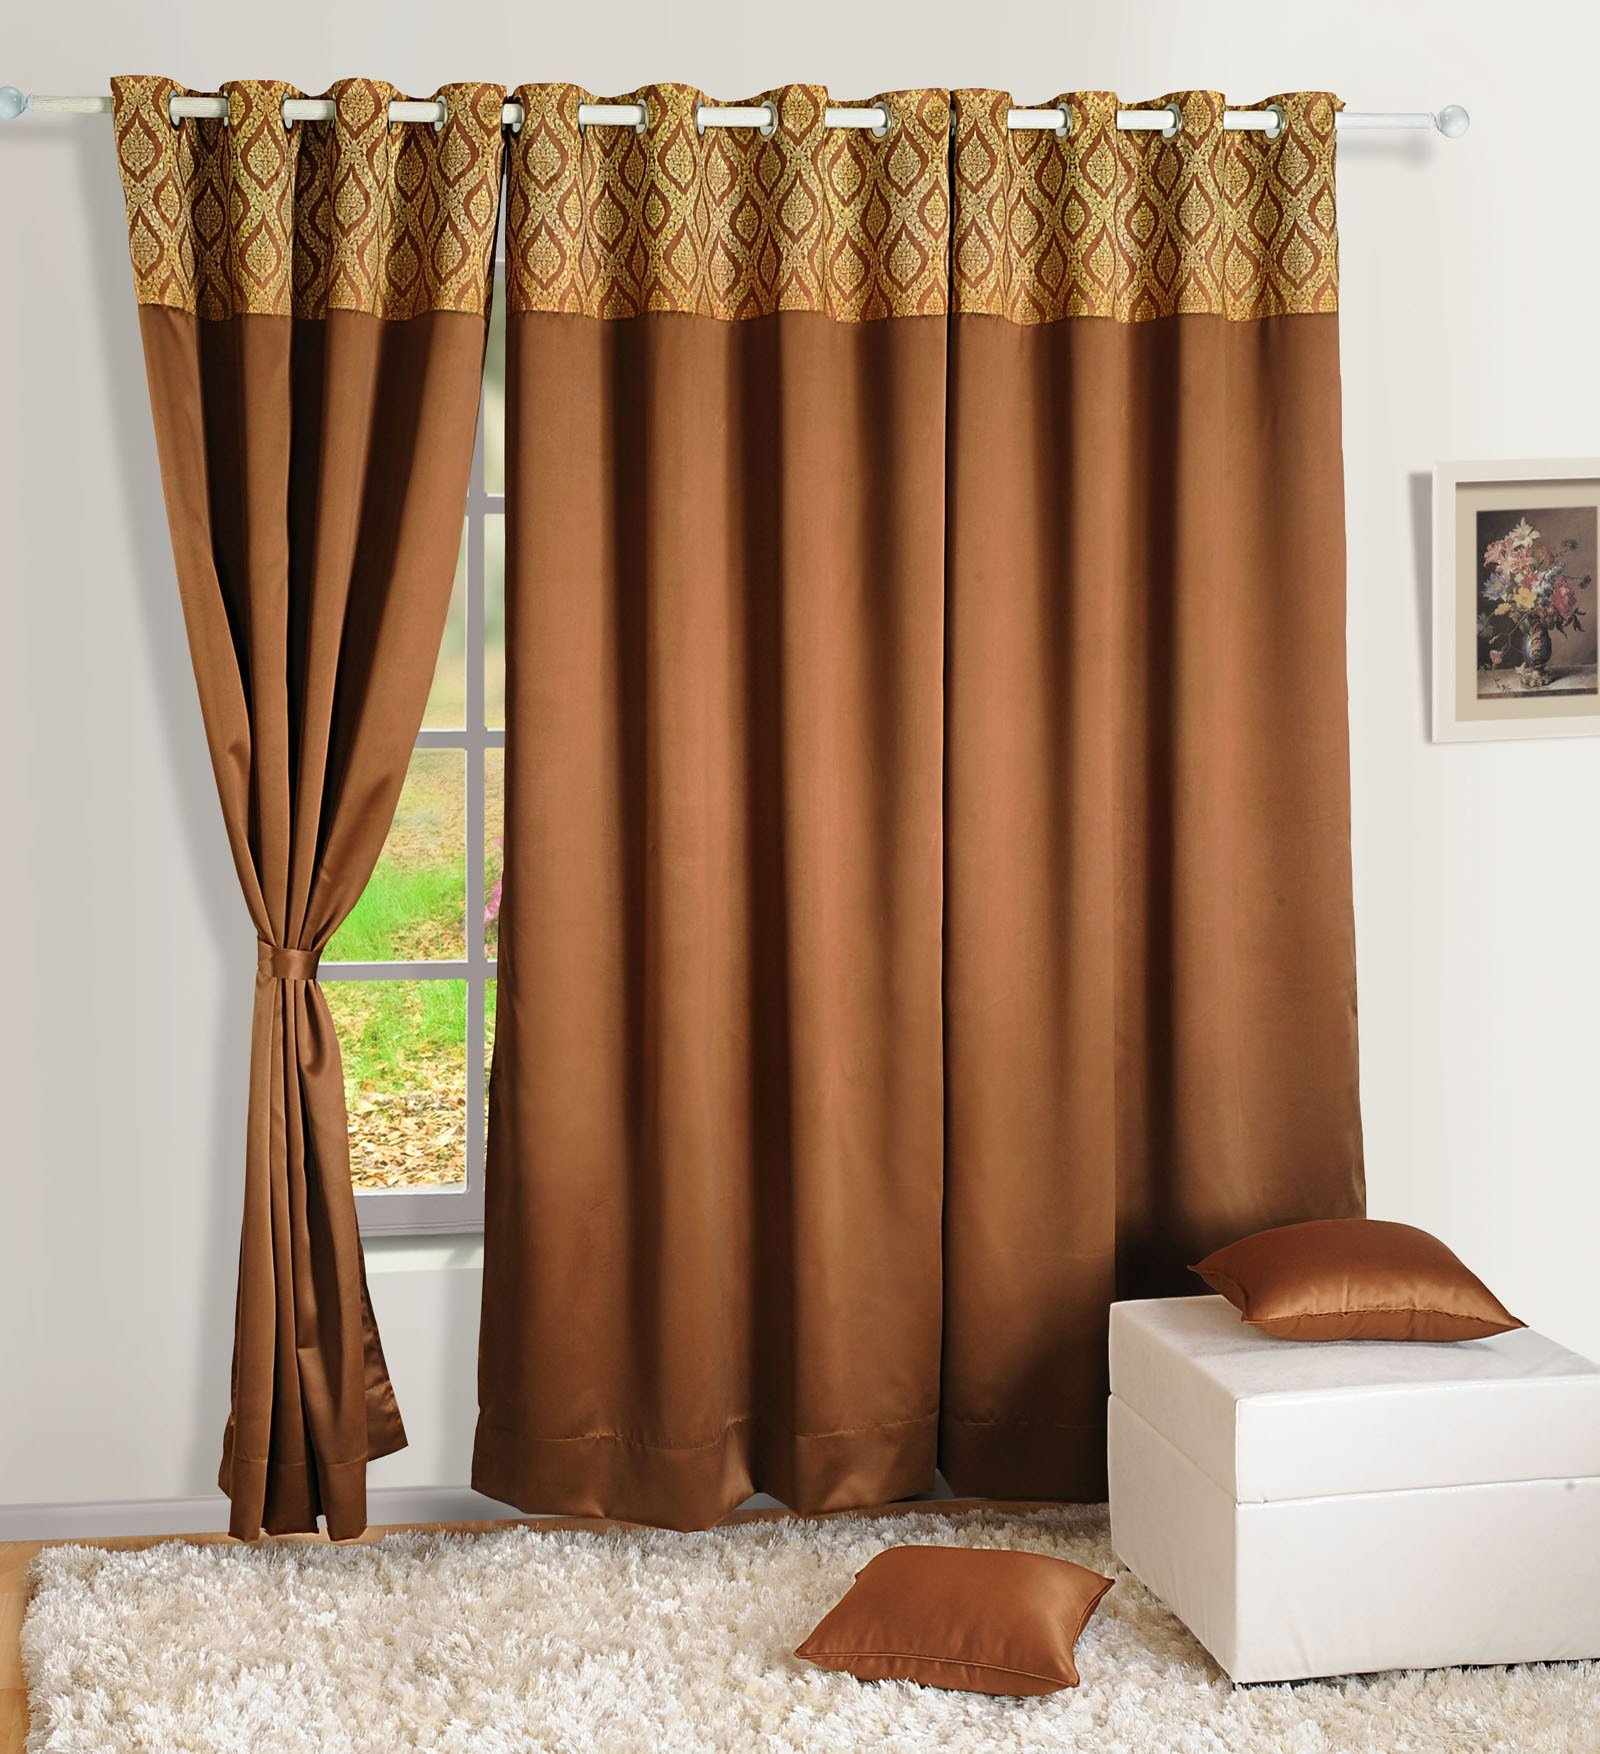 Best Home Decor Faux Silk Window Drape Panel Bedroom Blackout With Pictures